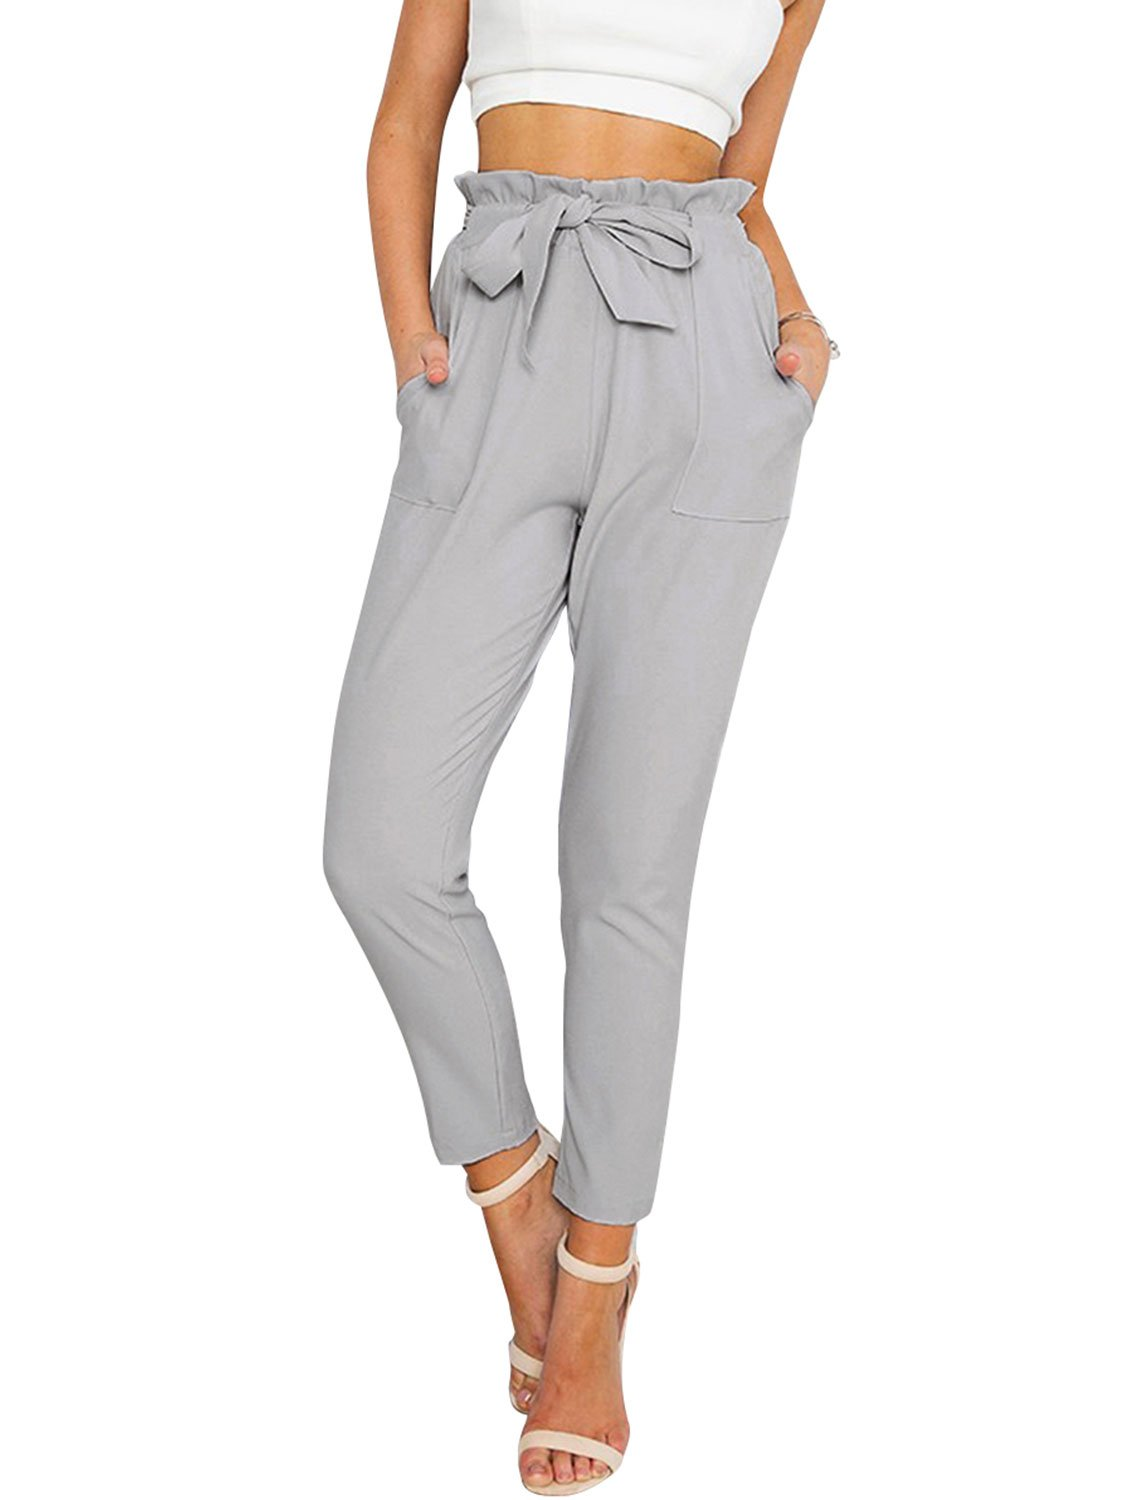 Simplee Apparel Women's Slim Straight Leg Stretch Casual Pants with Pockets Gray,Small